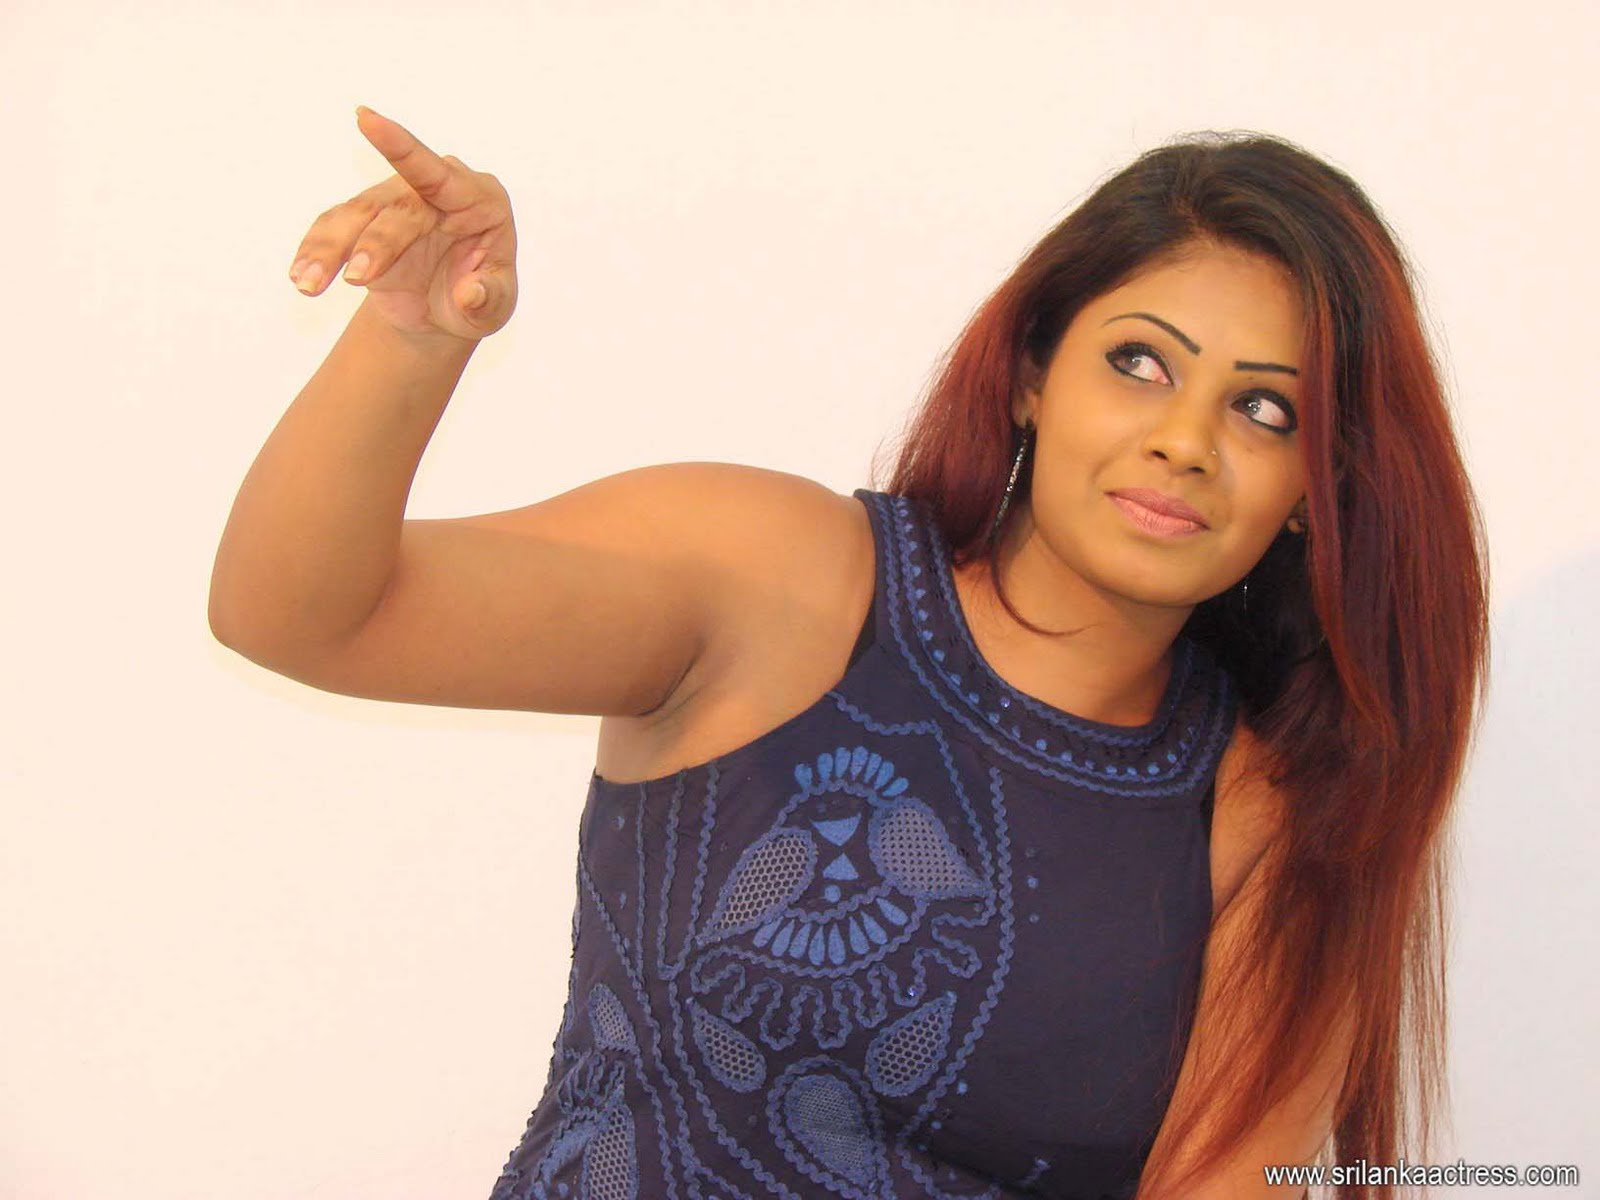 Pictures From Indian Movies And Actress: Wijayanthi